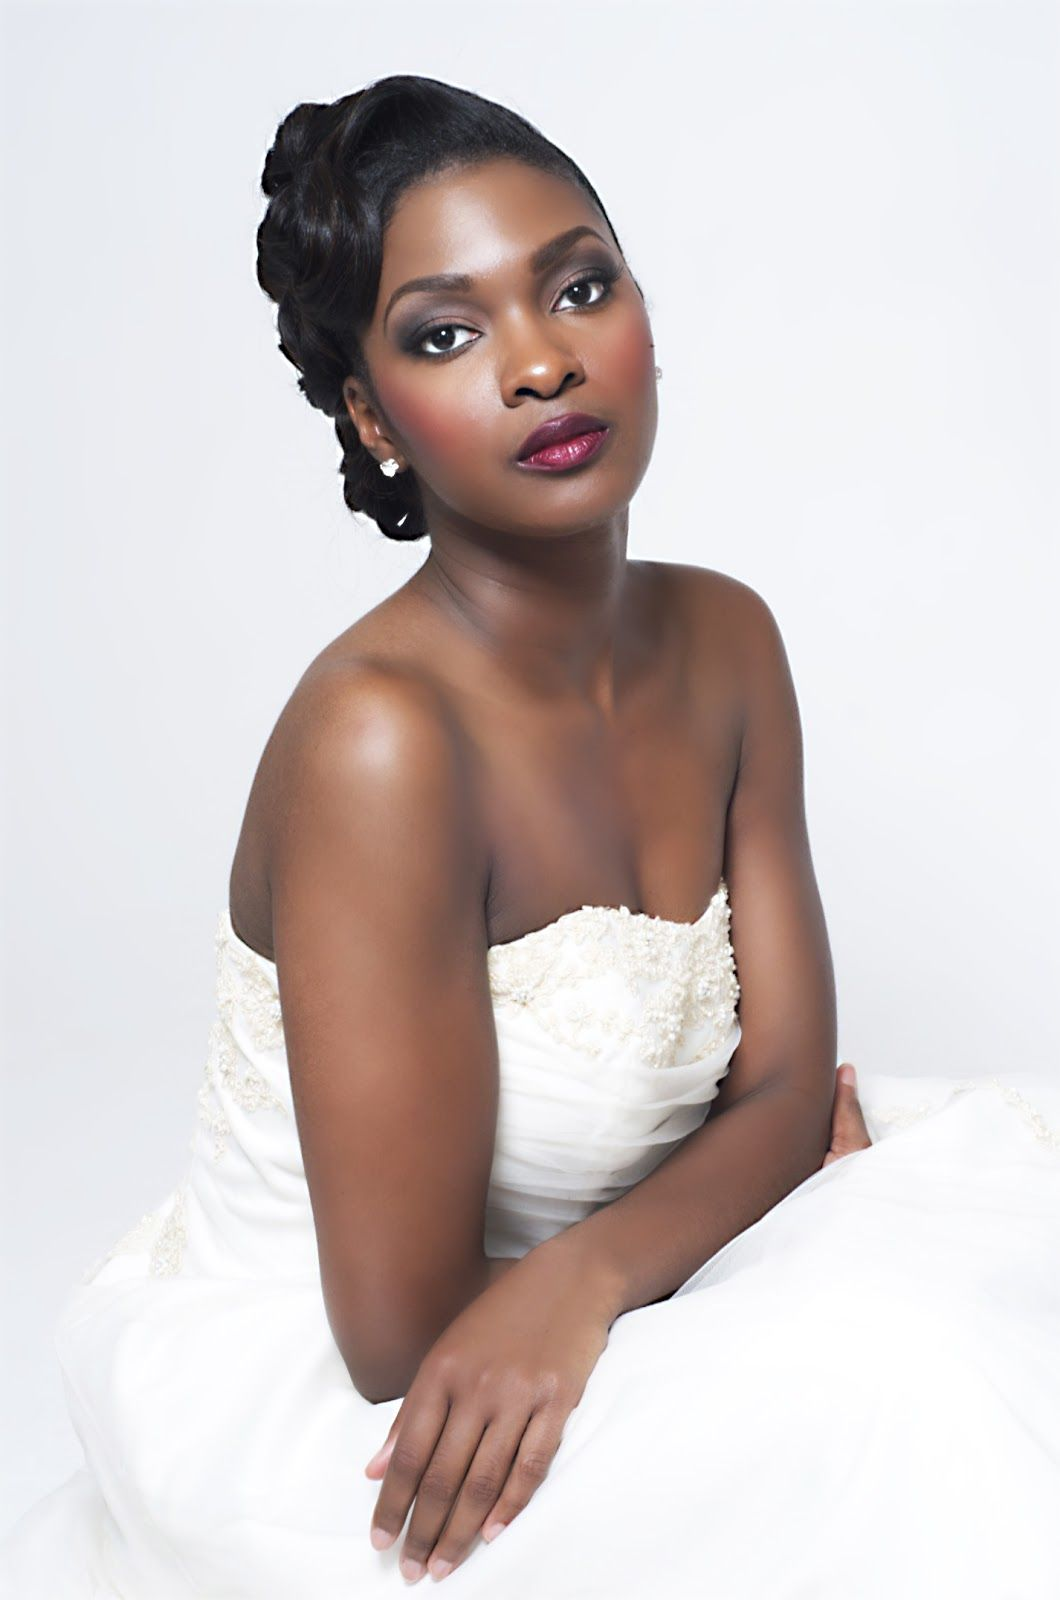 an examination of bride price in african american households Gender inequality and intimate partner violence among women in moshi as has been evident in the practices of bride-price american journal of public.